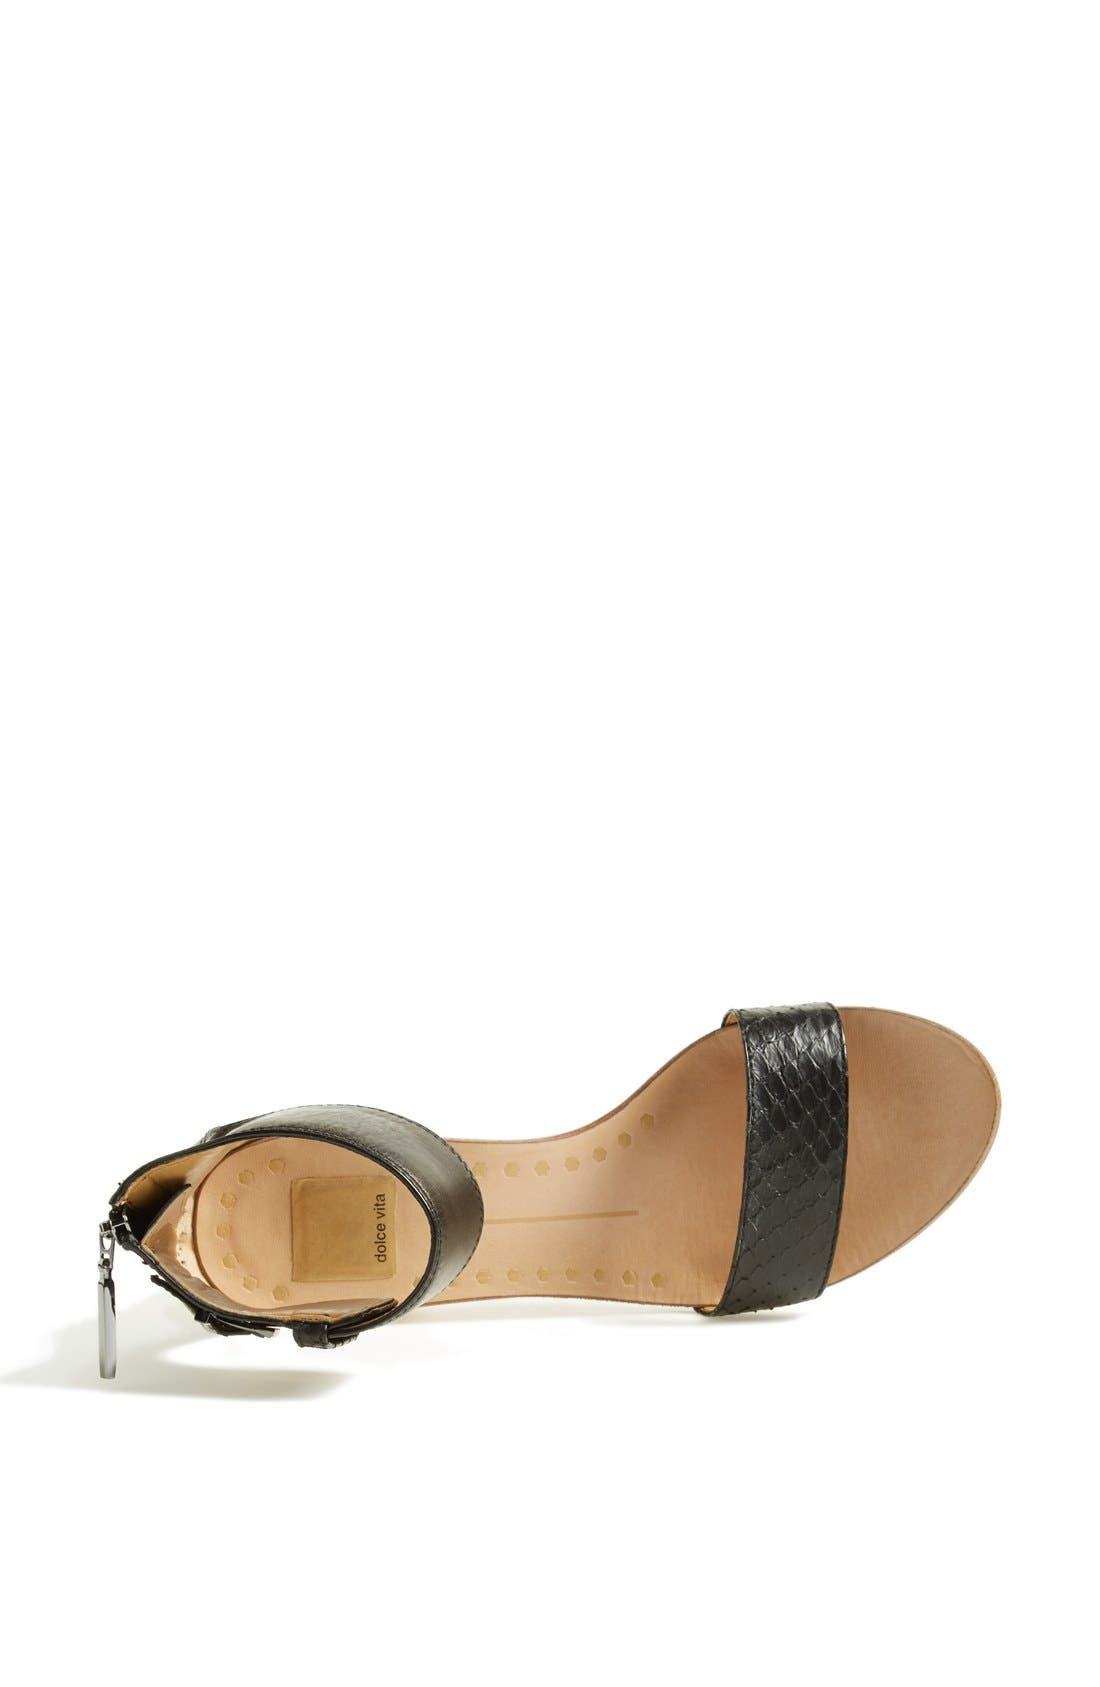 Alternate Image 3  - Dolce Vita 'Foxie' Snakeskin & Leather Sandal